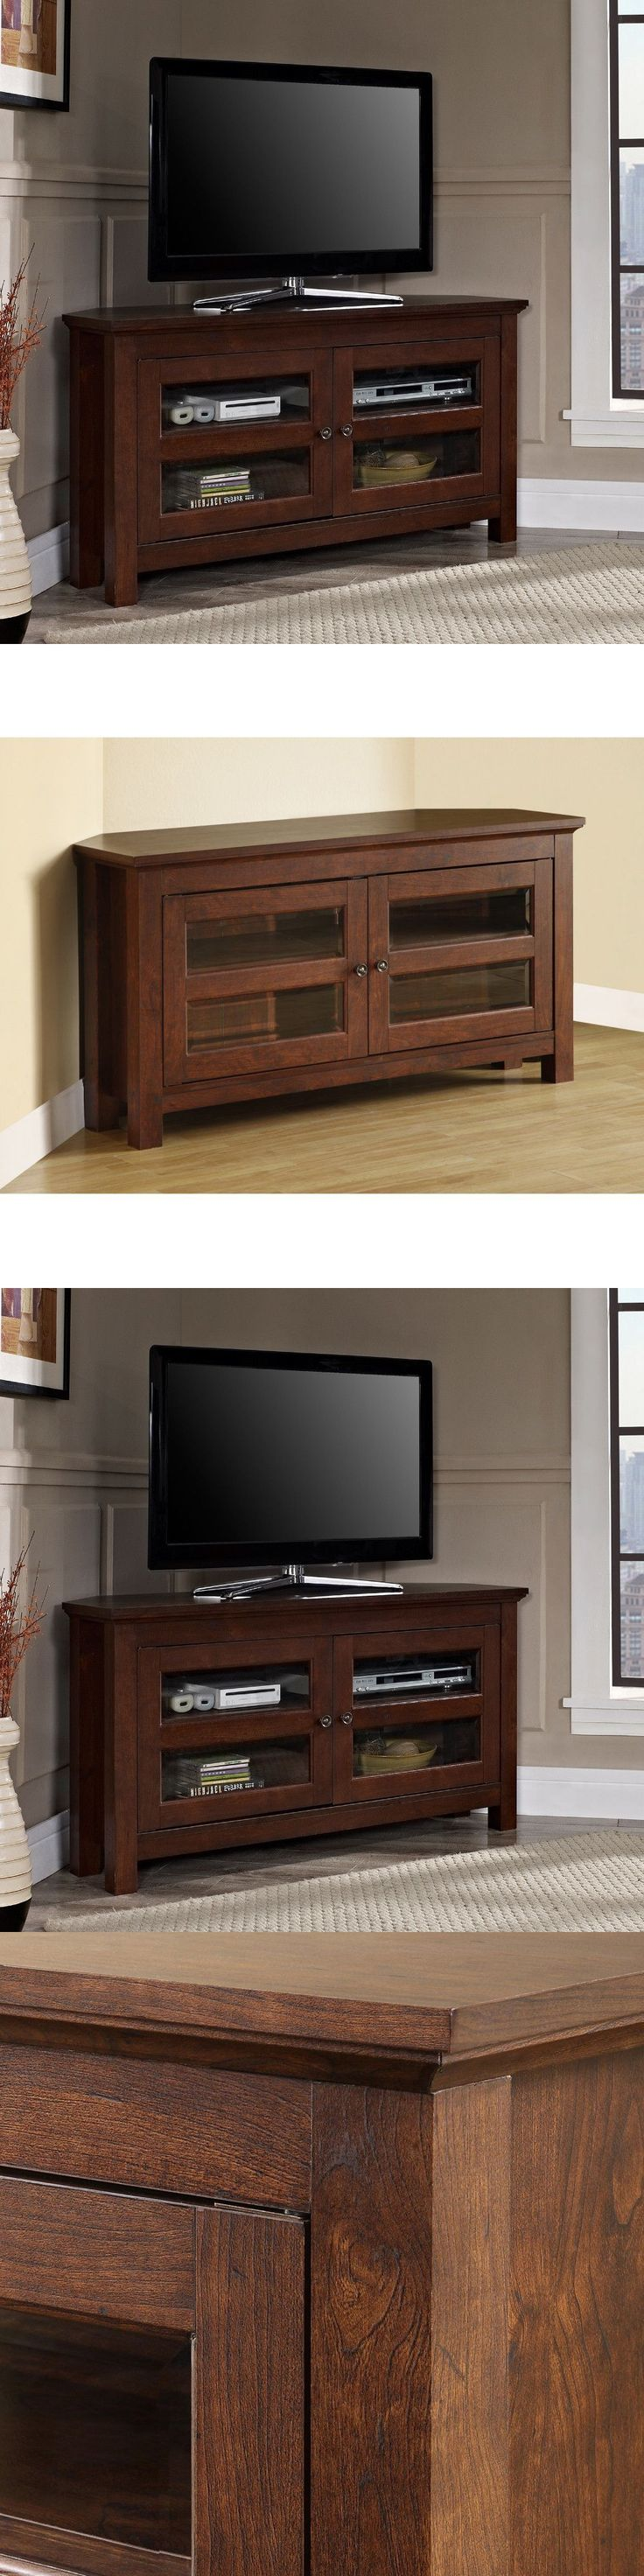 Entertainment Units TV Stands: Tv Stand Corner Entertainment Center Brown Living Room Furniture Wood Glass Door -> BUY IT NOW ONLY: $139 on eBay!